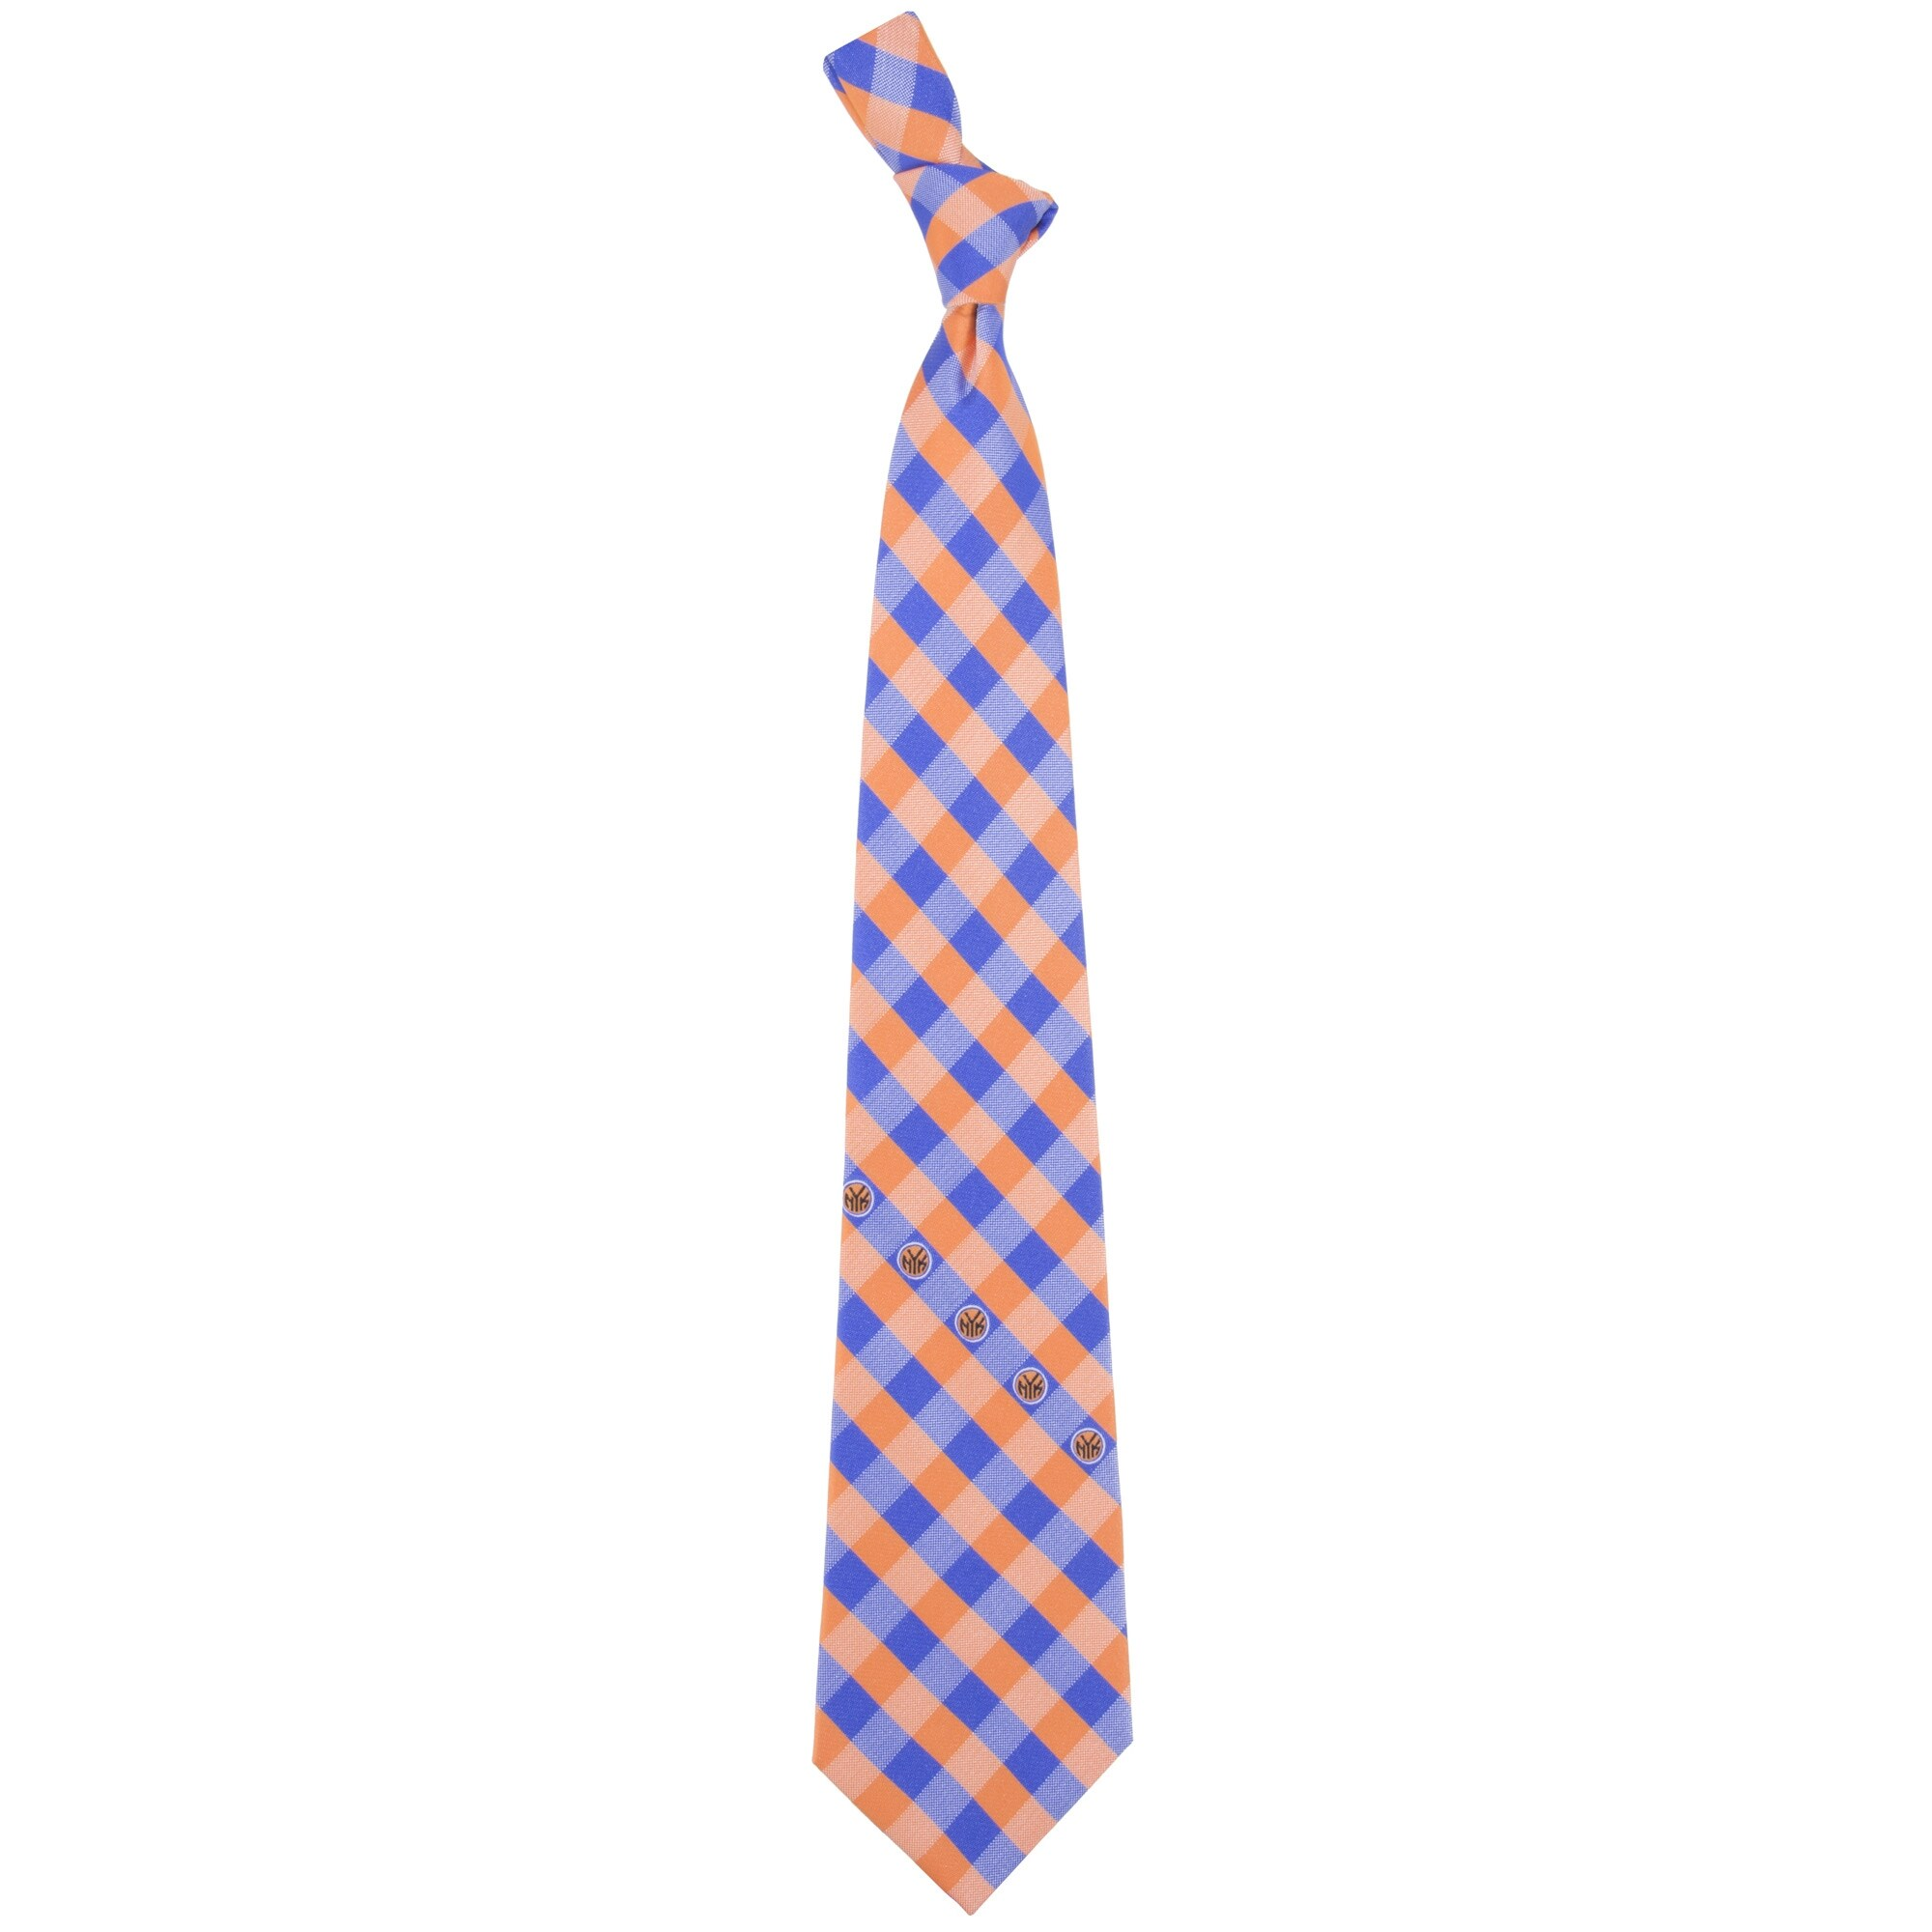 New York Knicks Woven Checkered Tie - Royal Blue/Orange